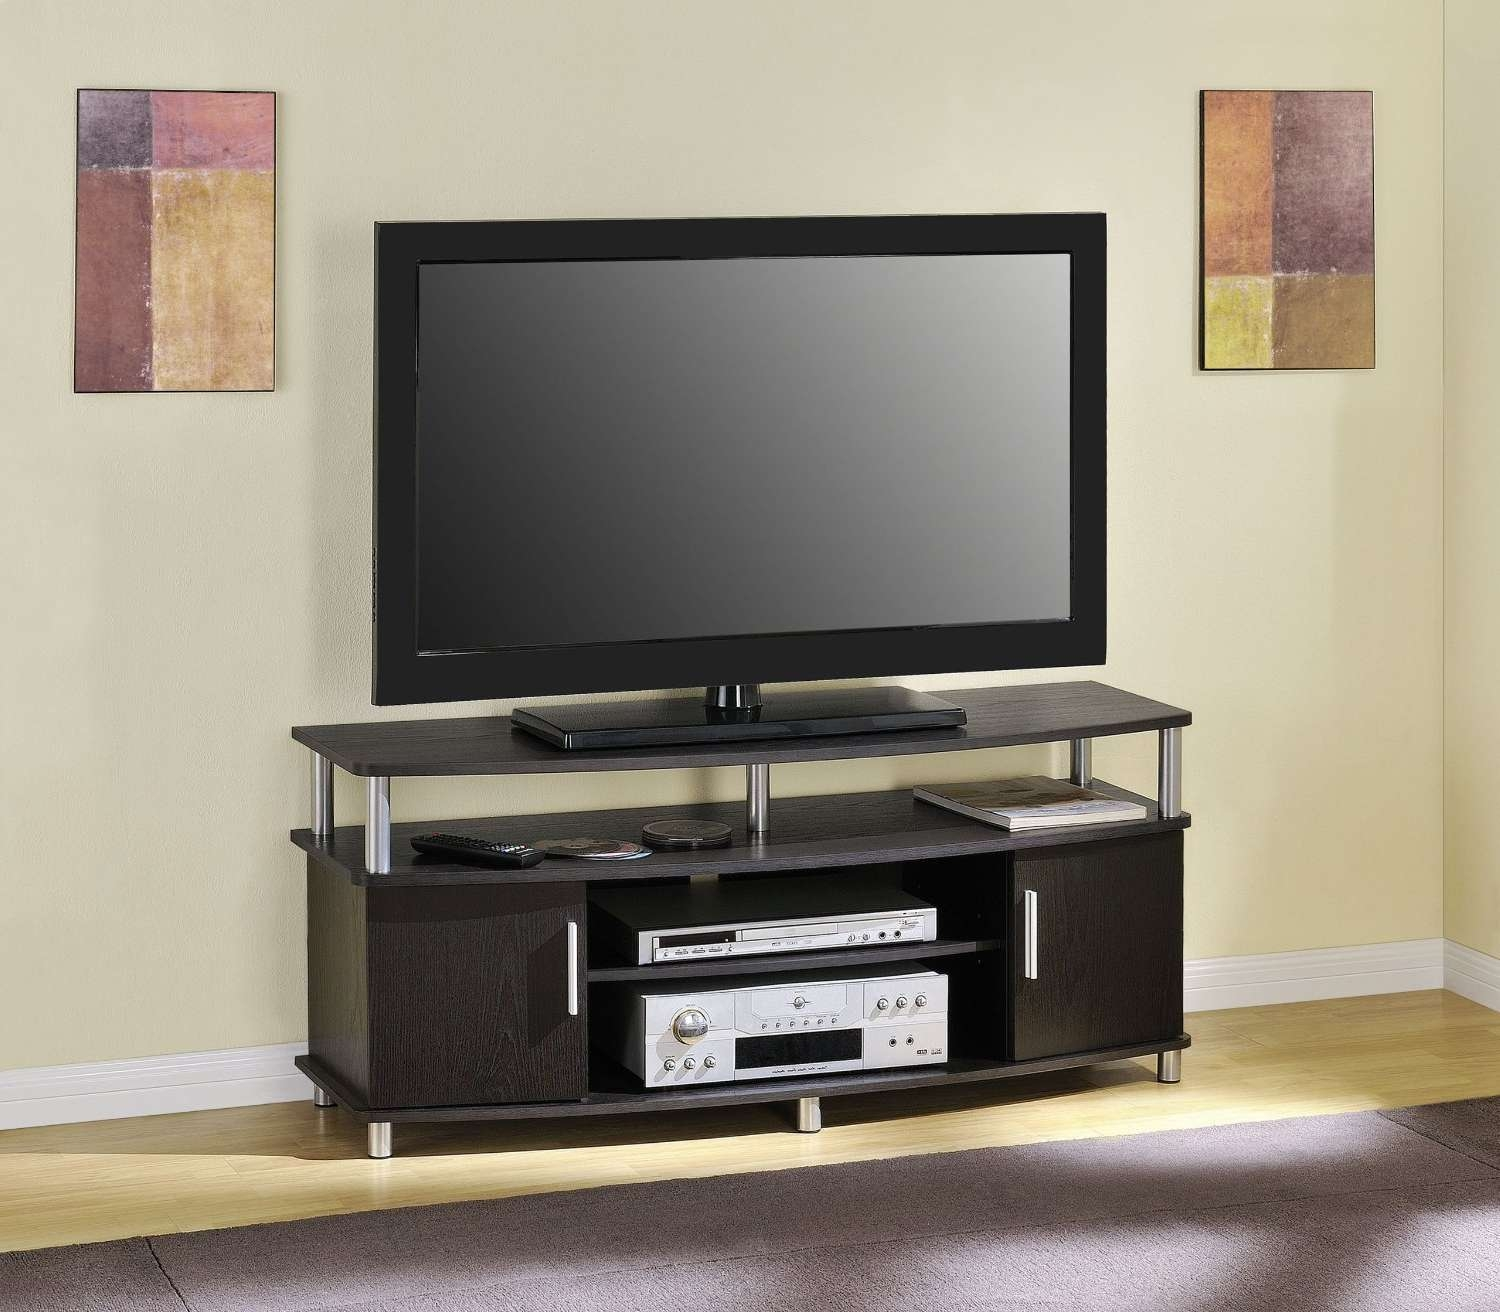 Perfect Corner Tv Stands For Flat Screen Tvs 60 With Additional For Corner Tv Stands For 60 Inch Flat Screens (View 12 of 15)